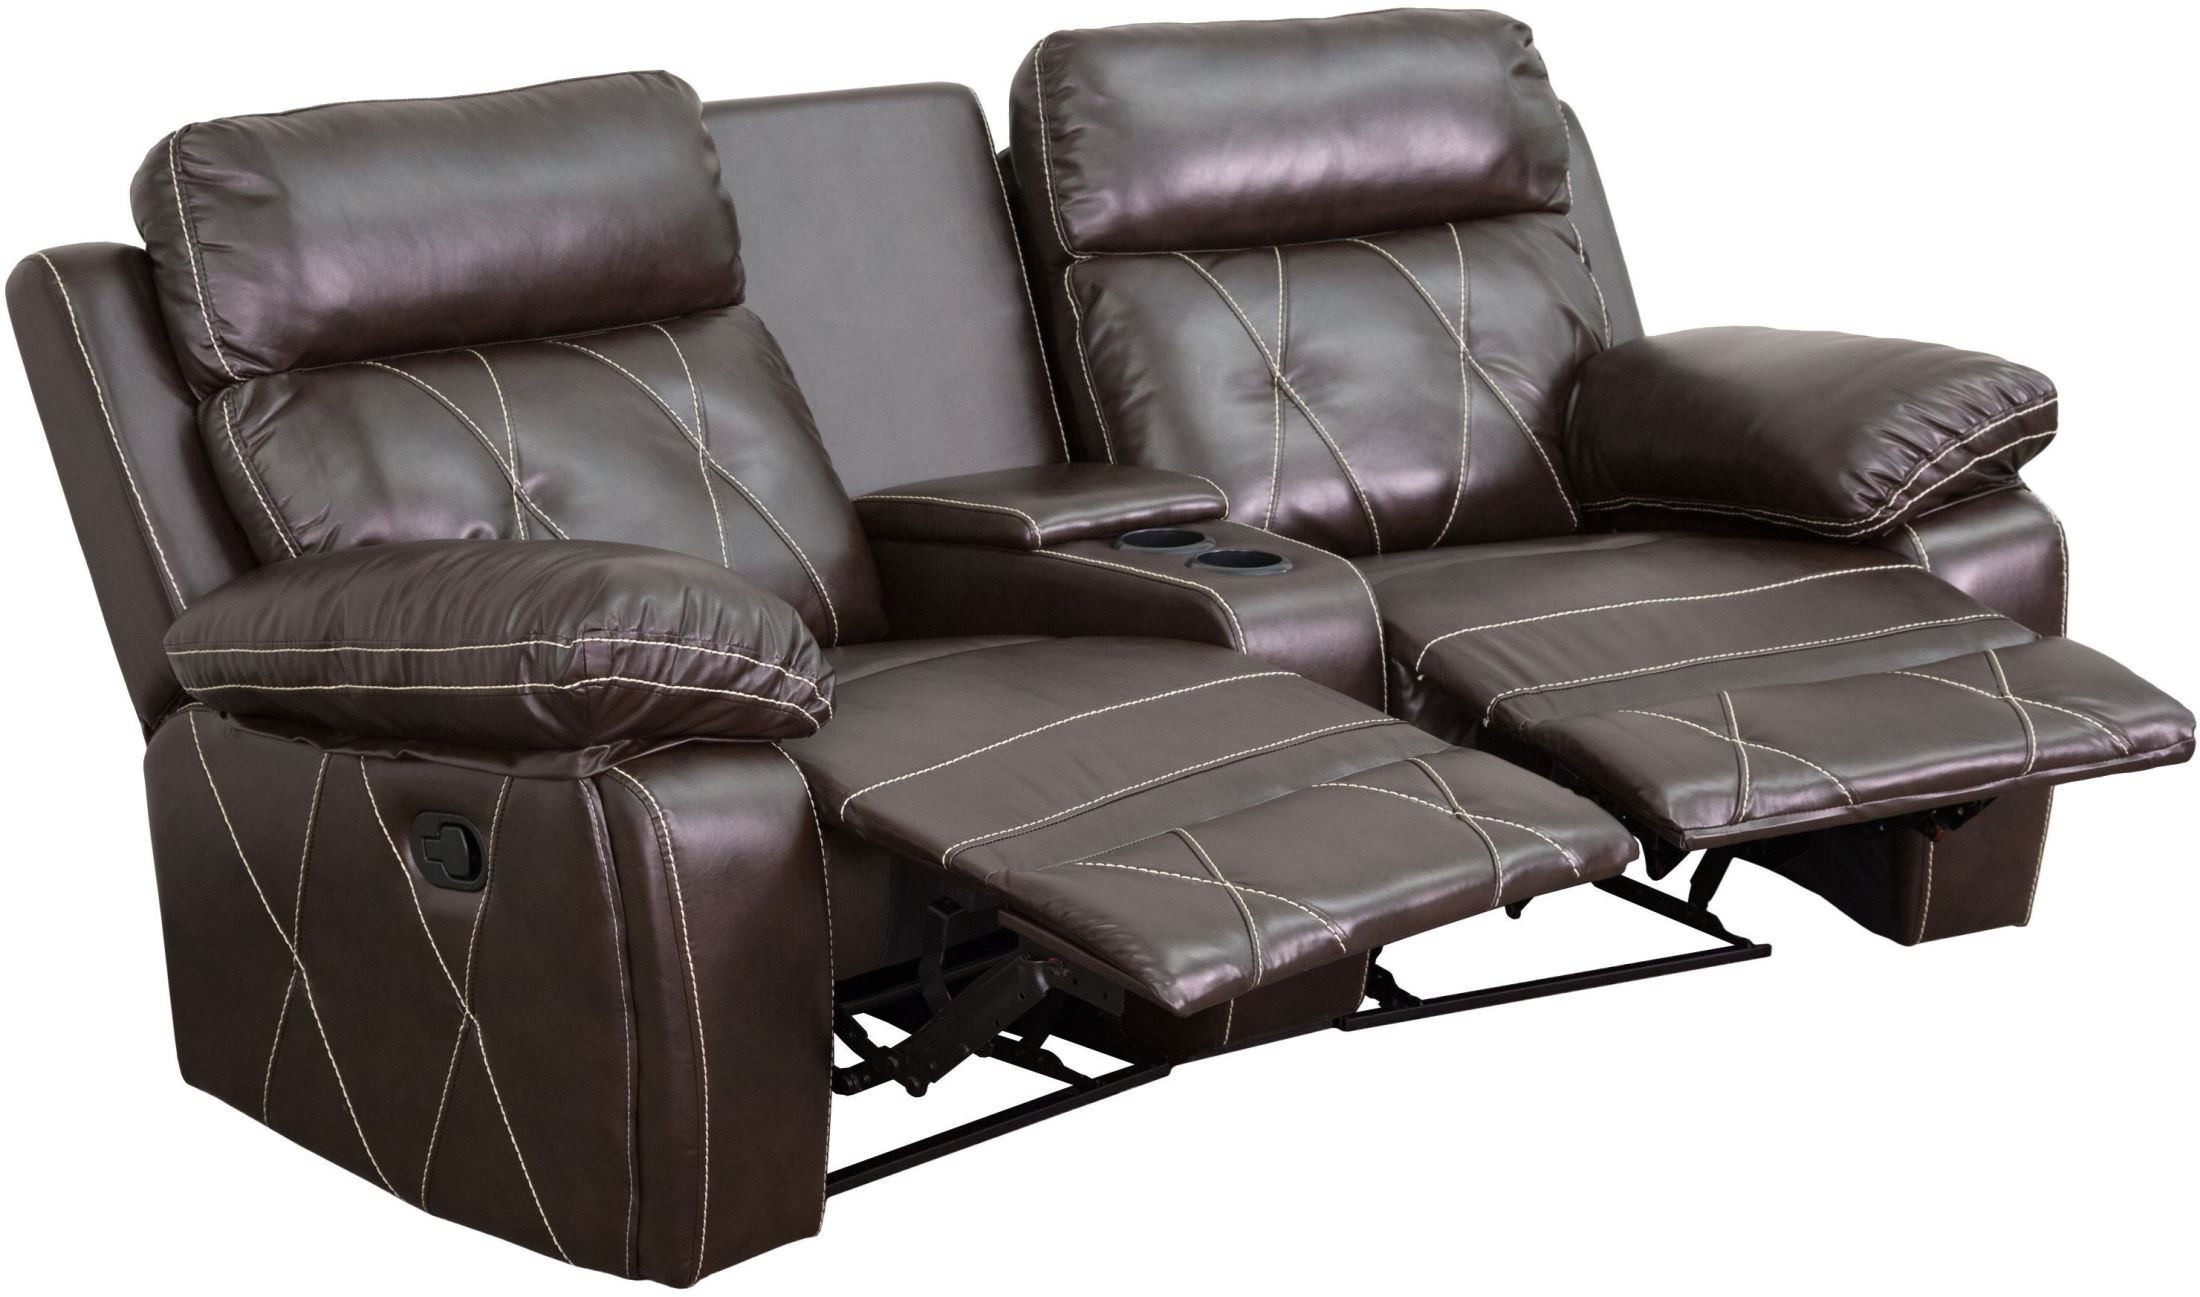 2 seat theater chairs replacement webbing for outdoor reel comfort series reclining brown leather